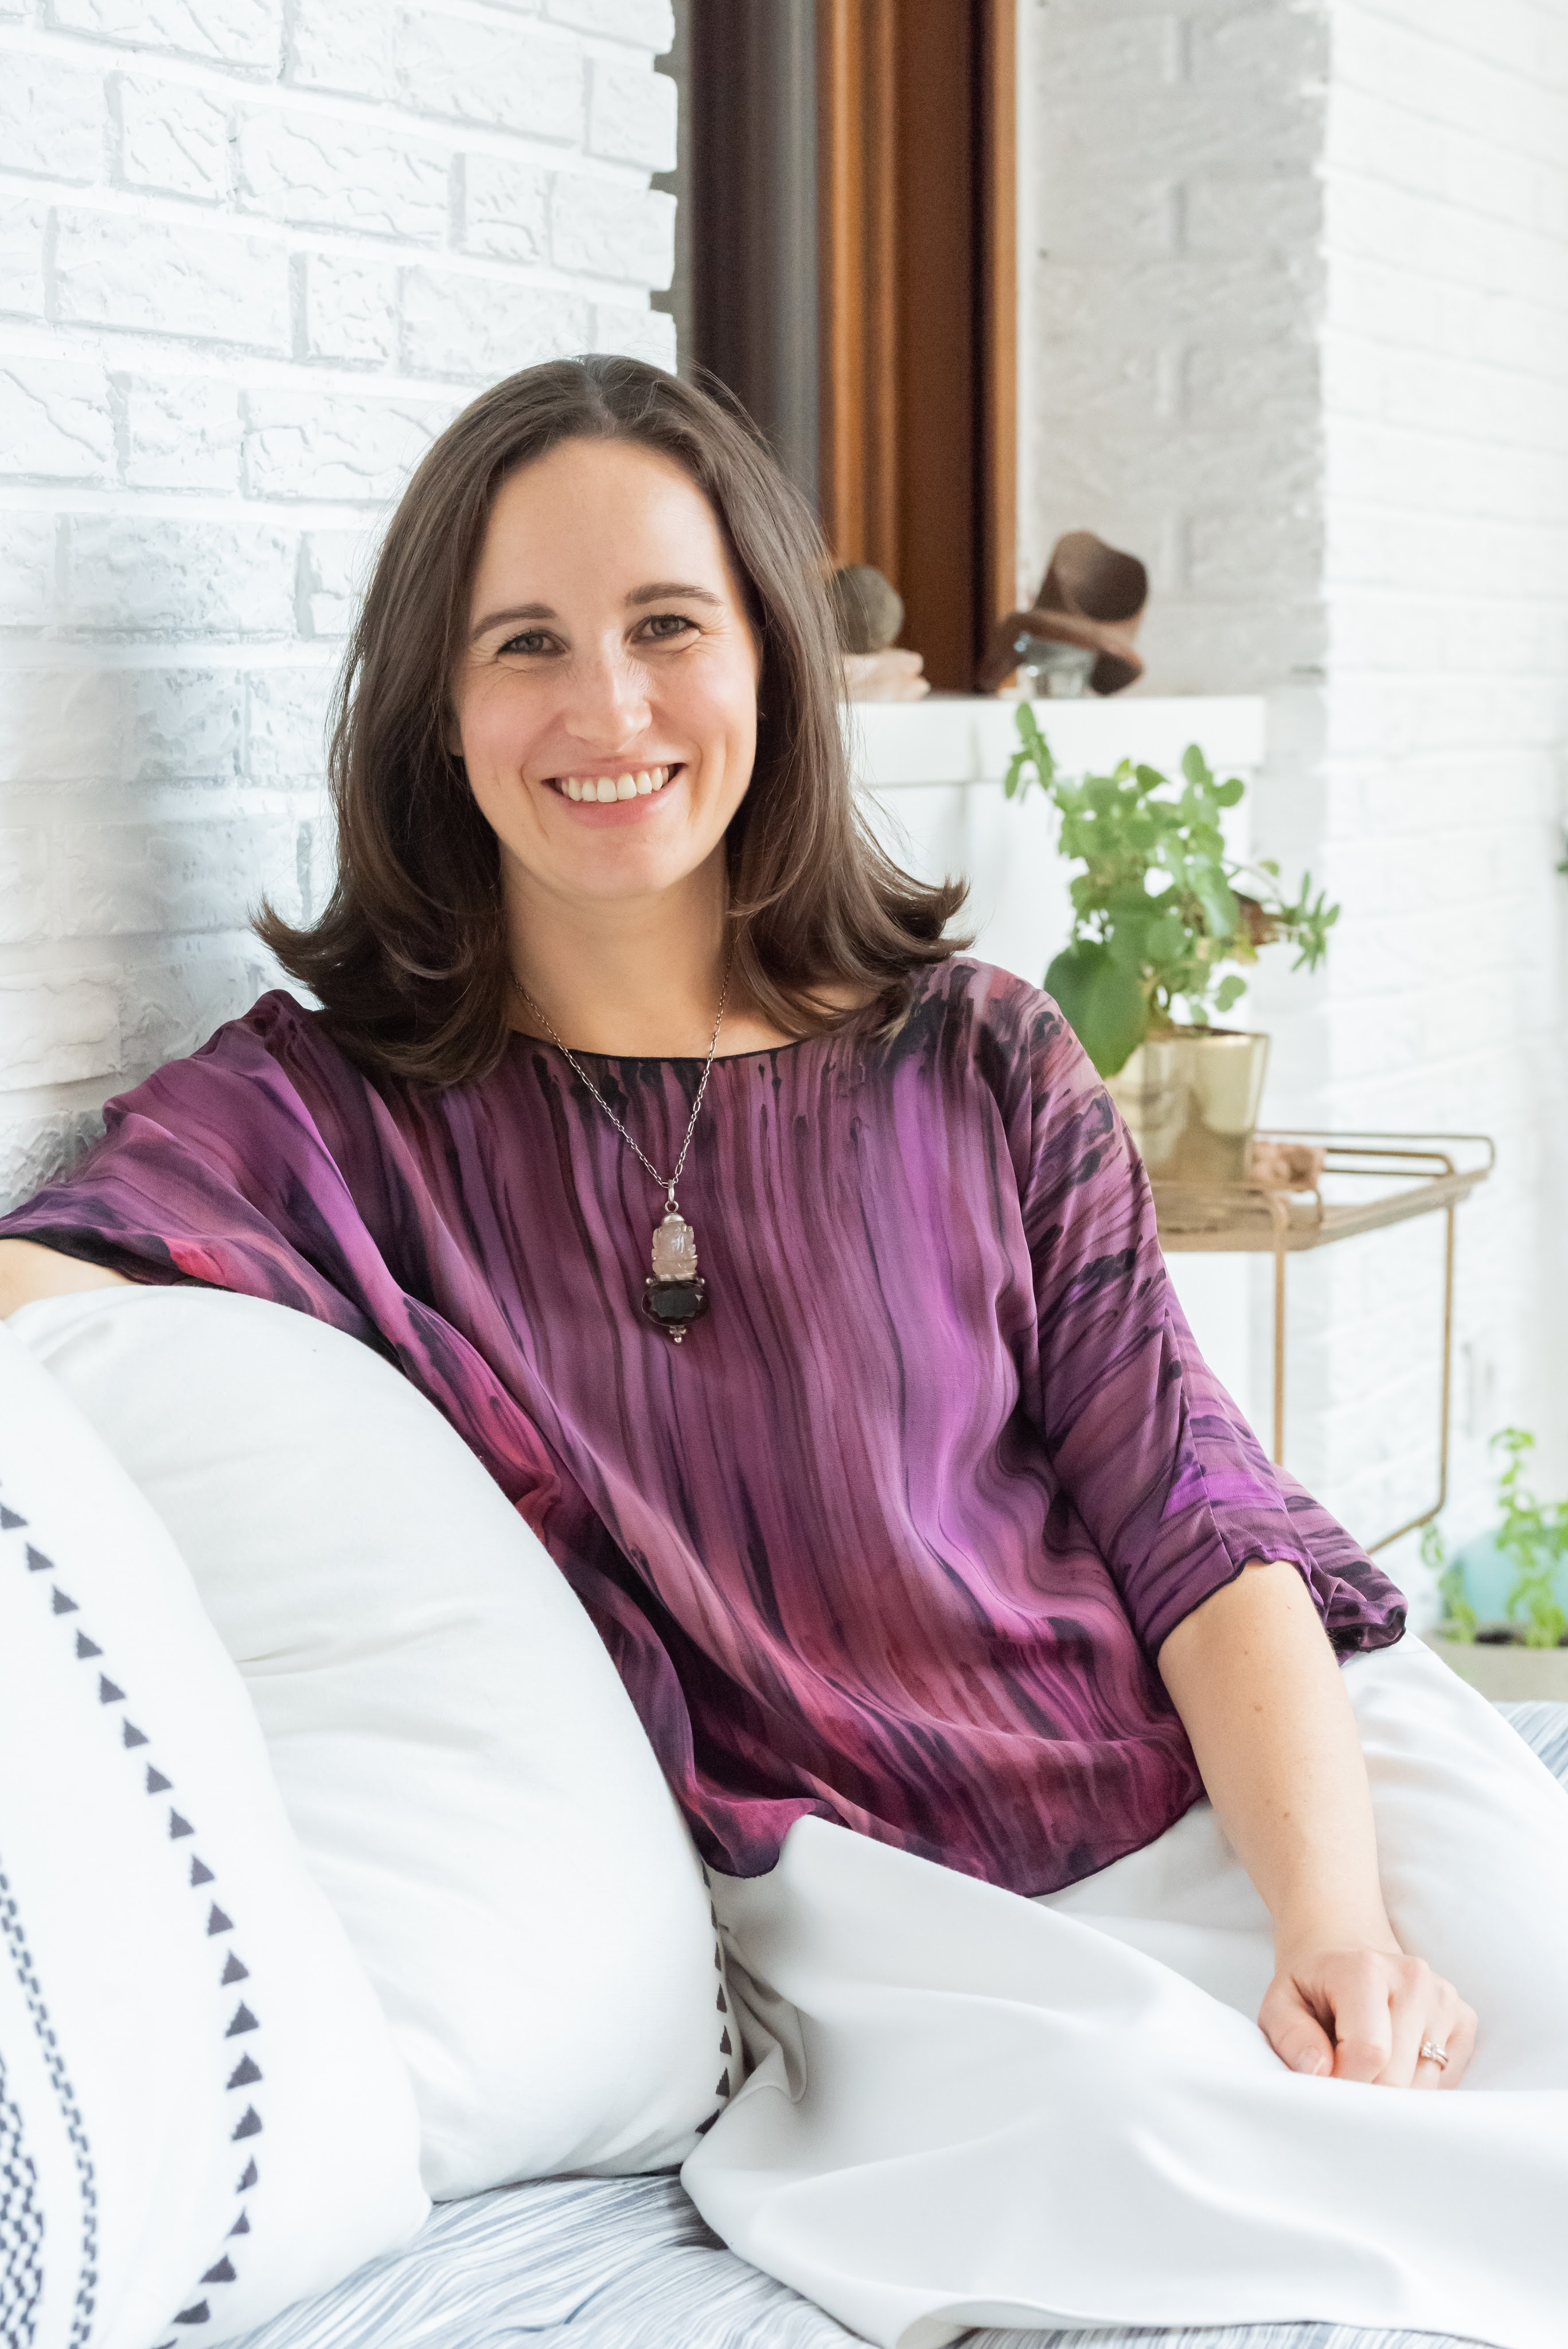 Char Tamason, founder of Health by Intuition, sitting and smiling.